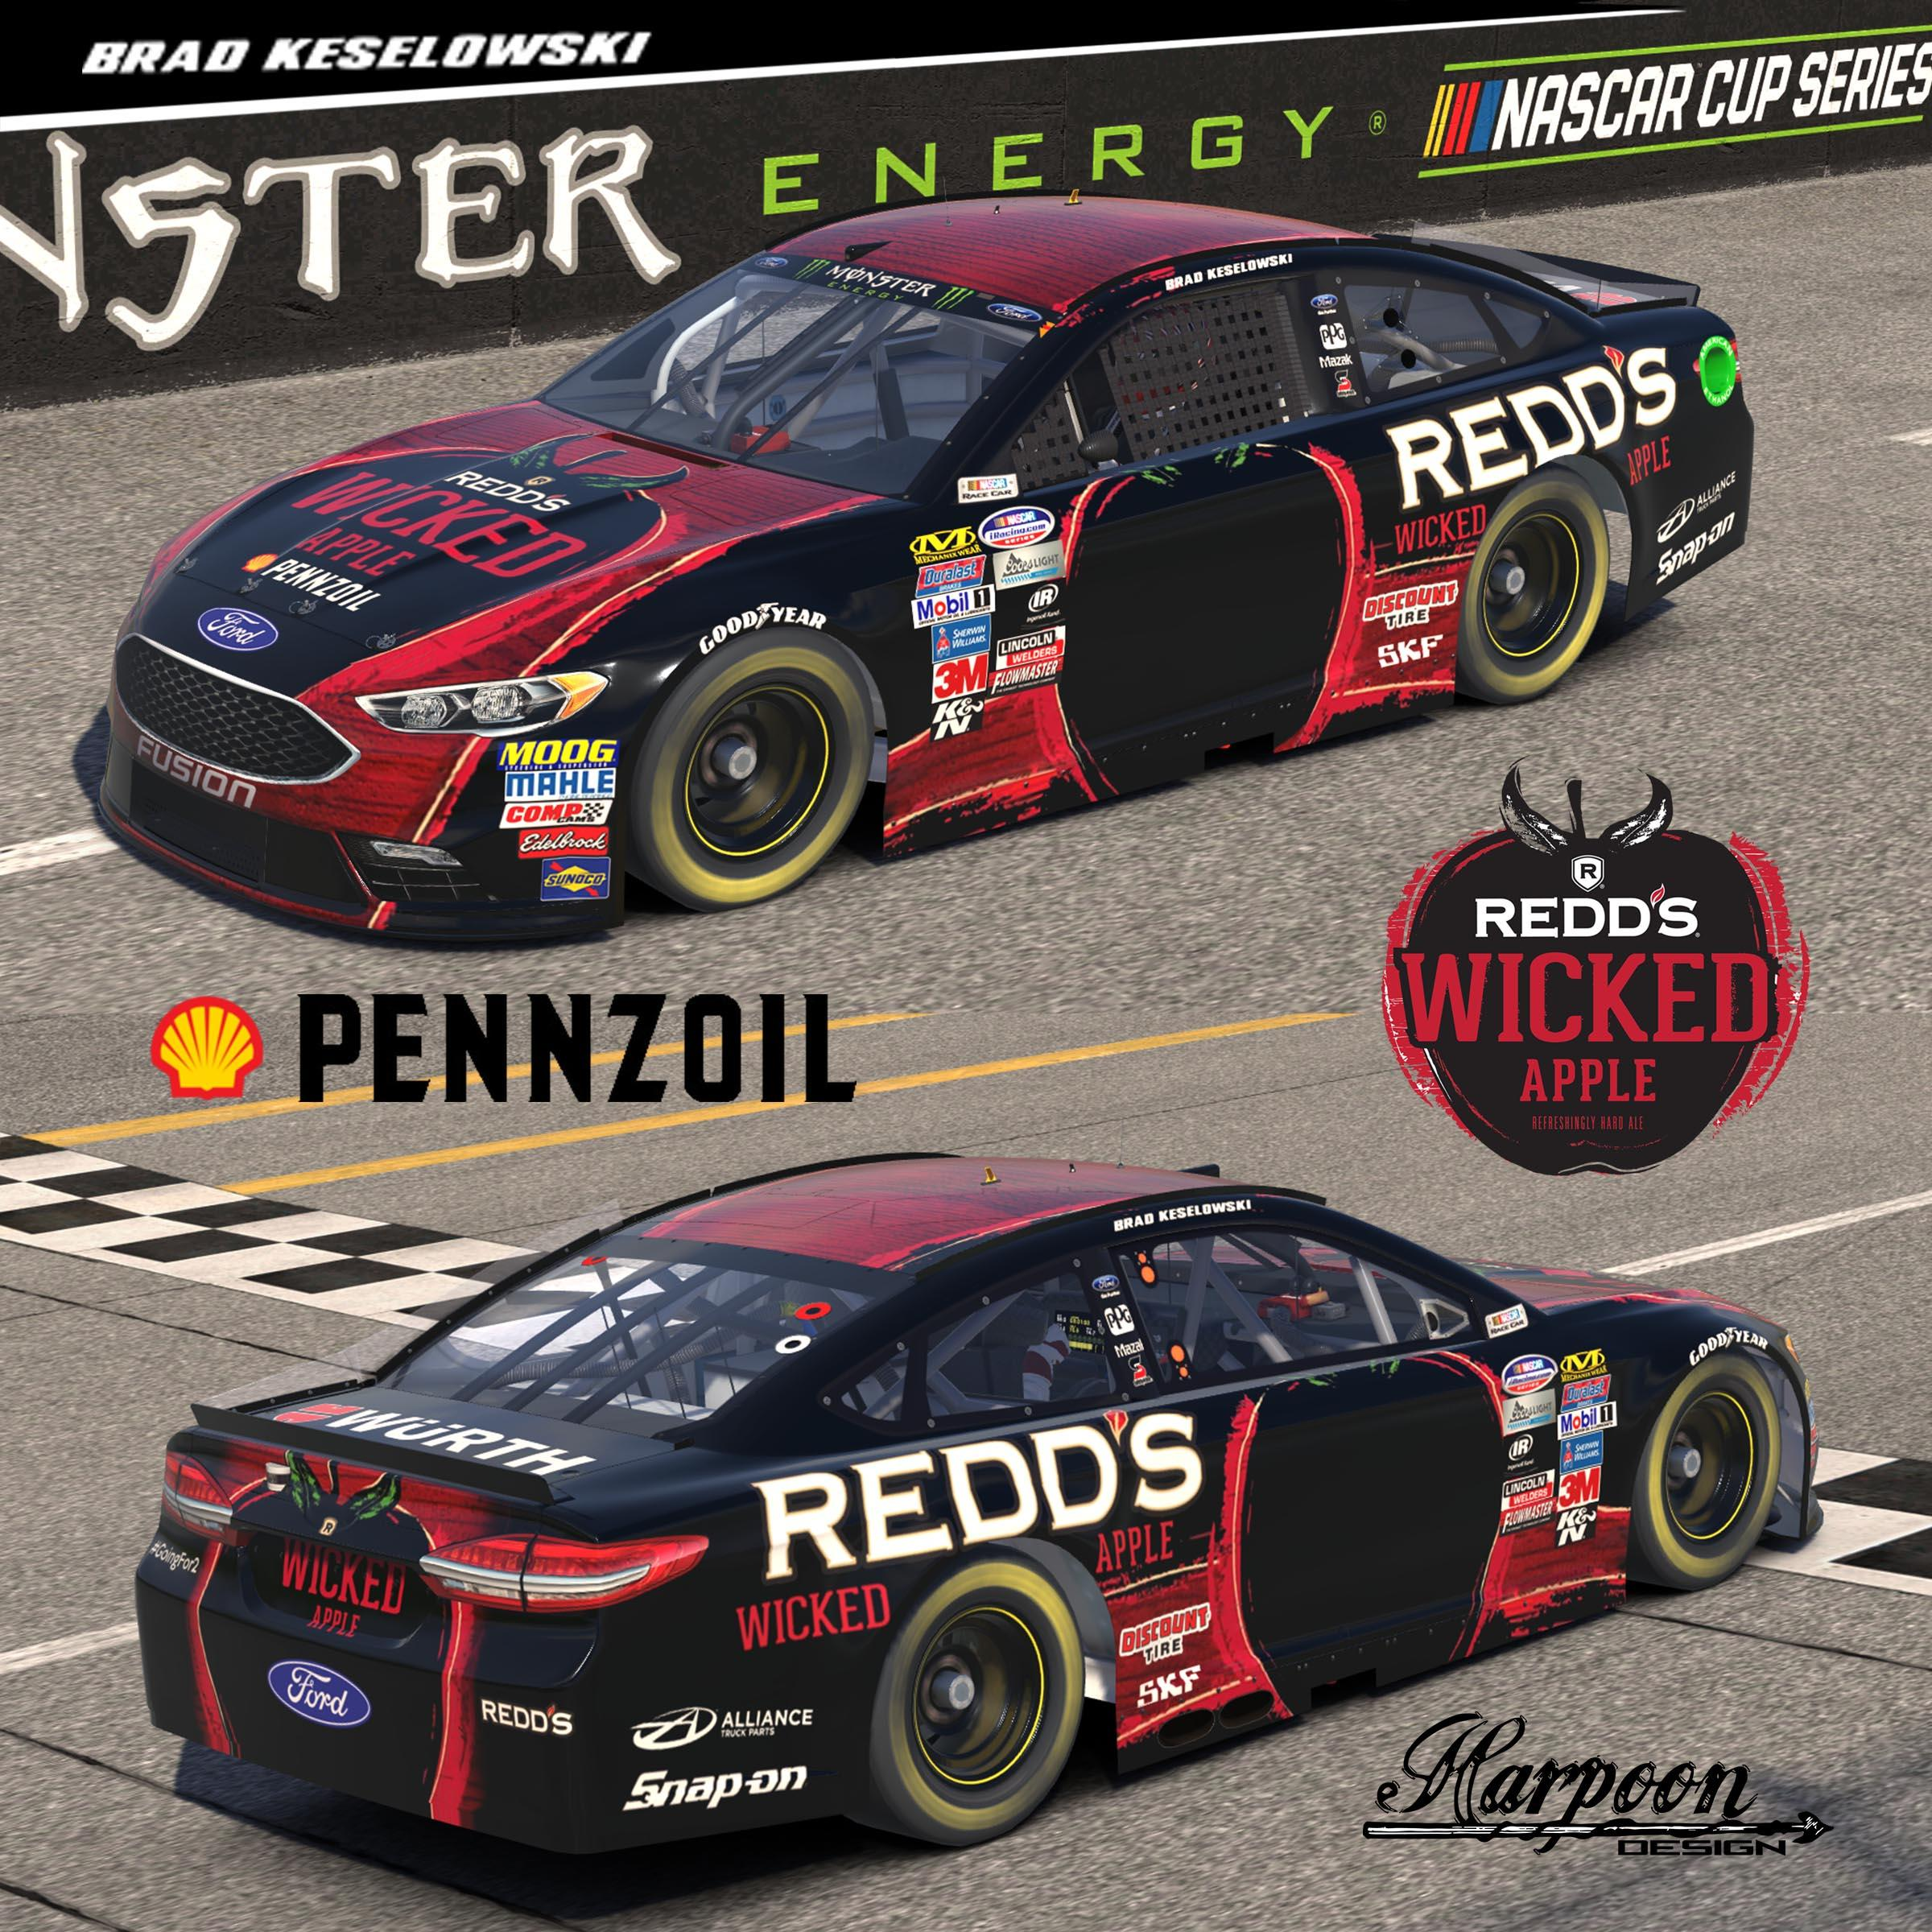 Preview of 2014 Brad Keselowski Reds Wicked Apple Fusion by Brantley Roden